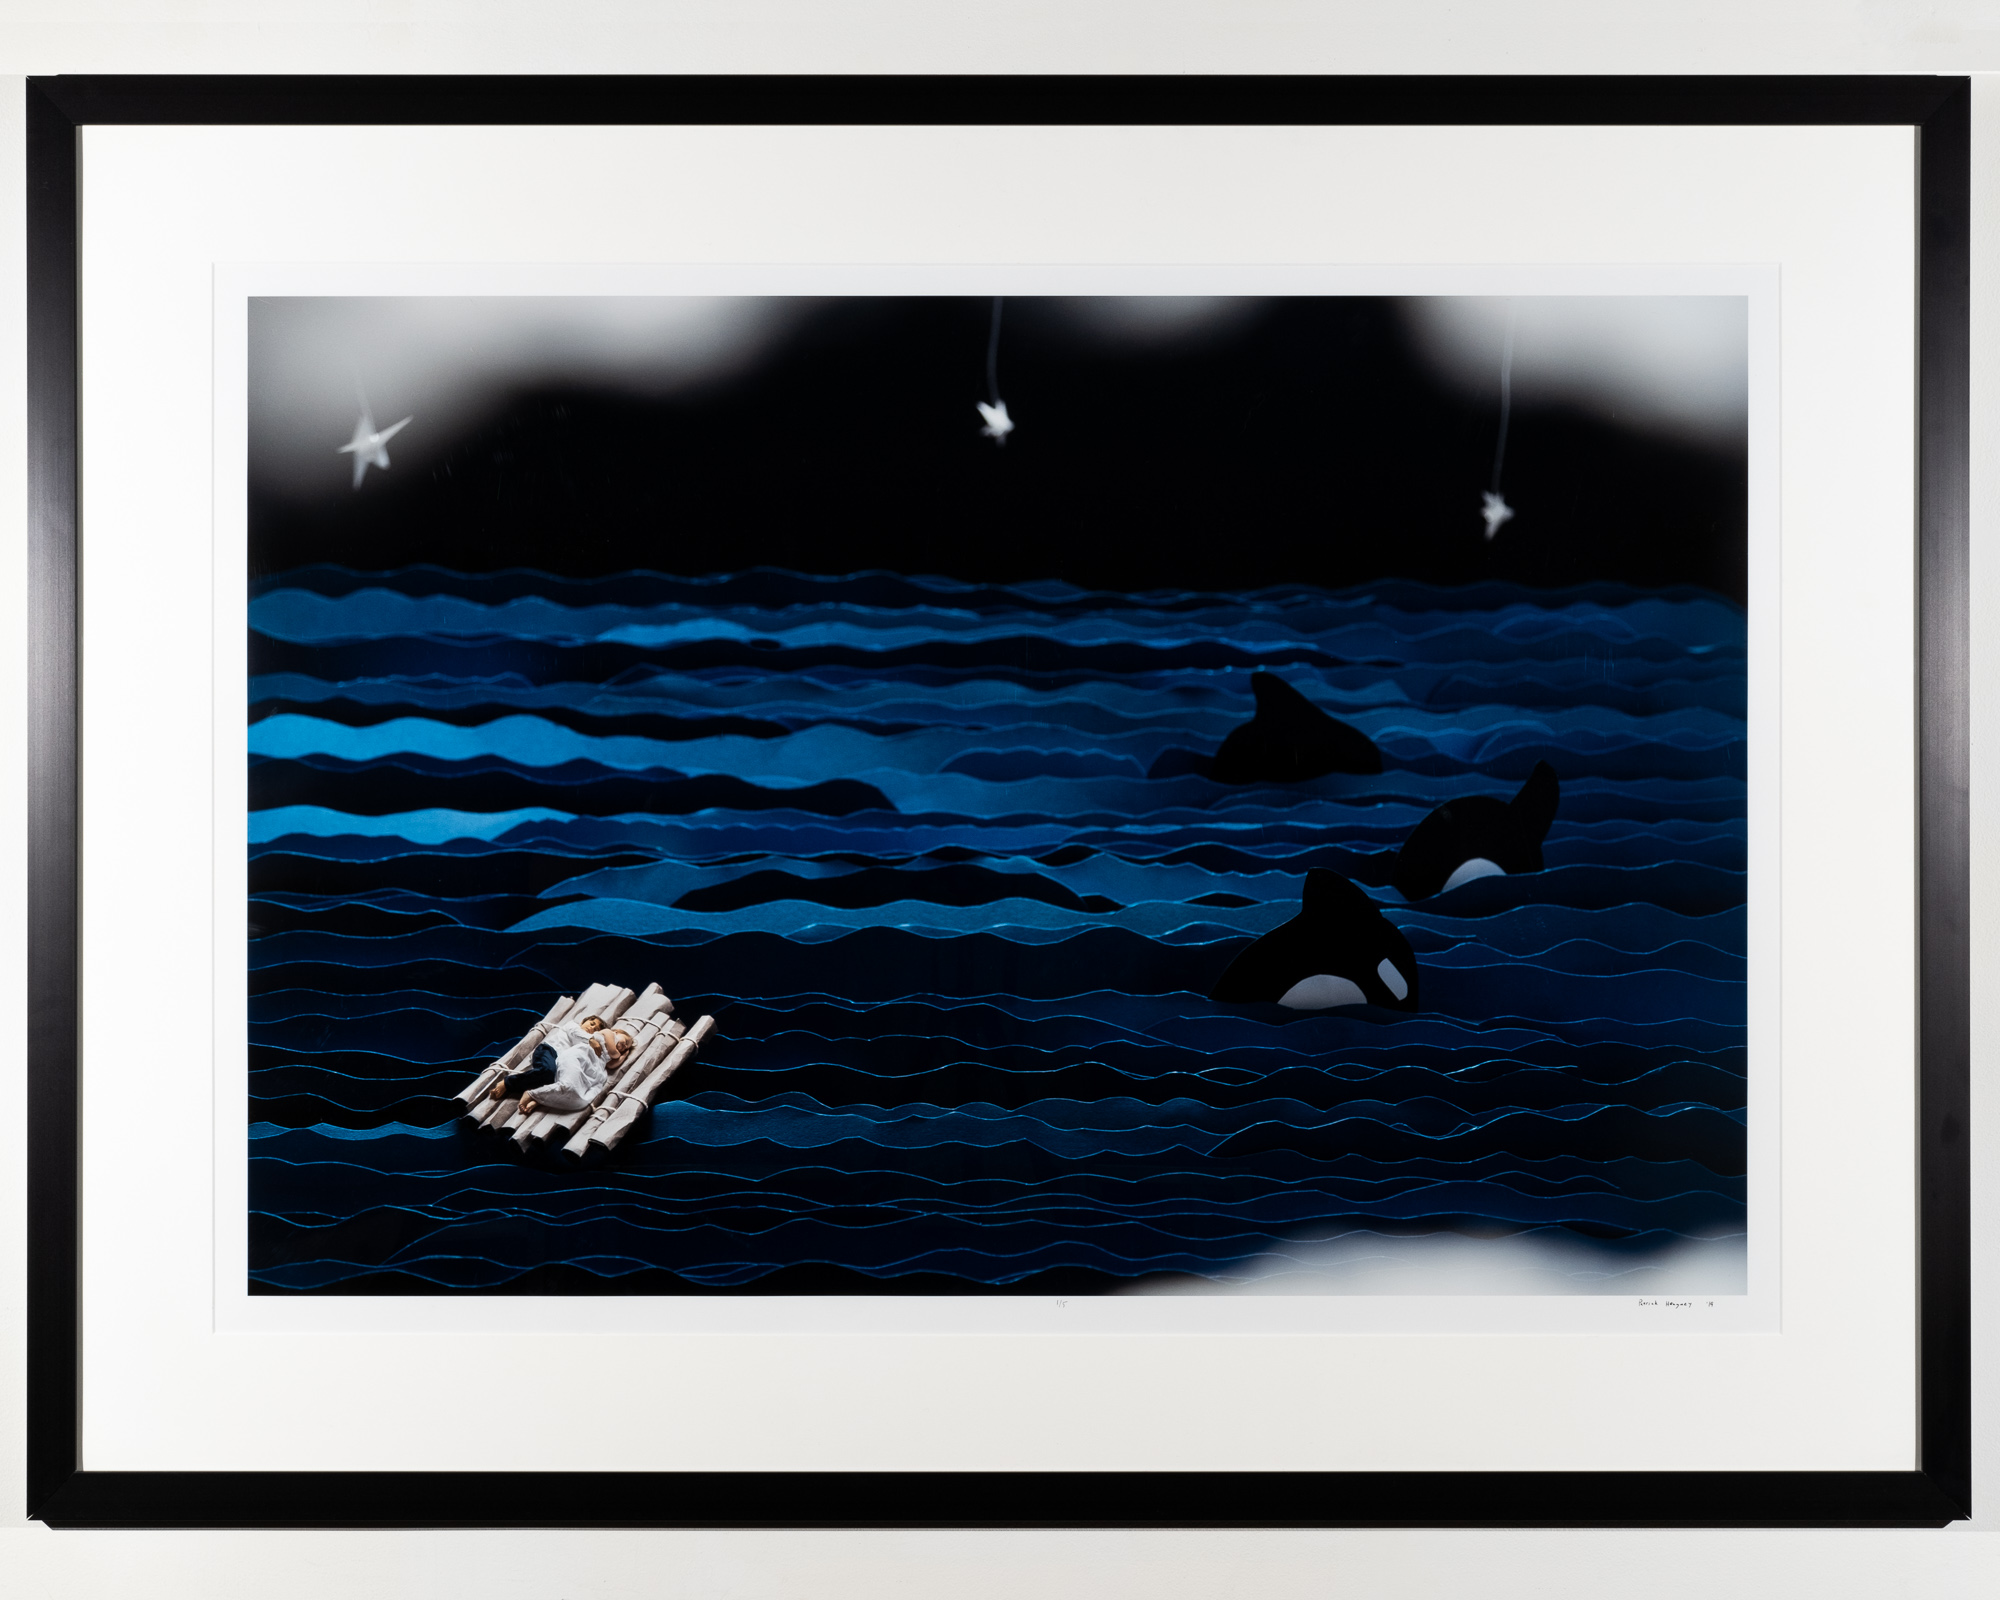 Floating    Archival Pigment Print   54 x 41 inches PHE 125G